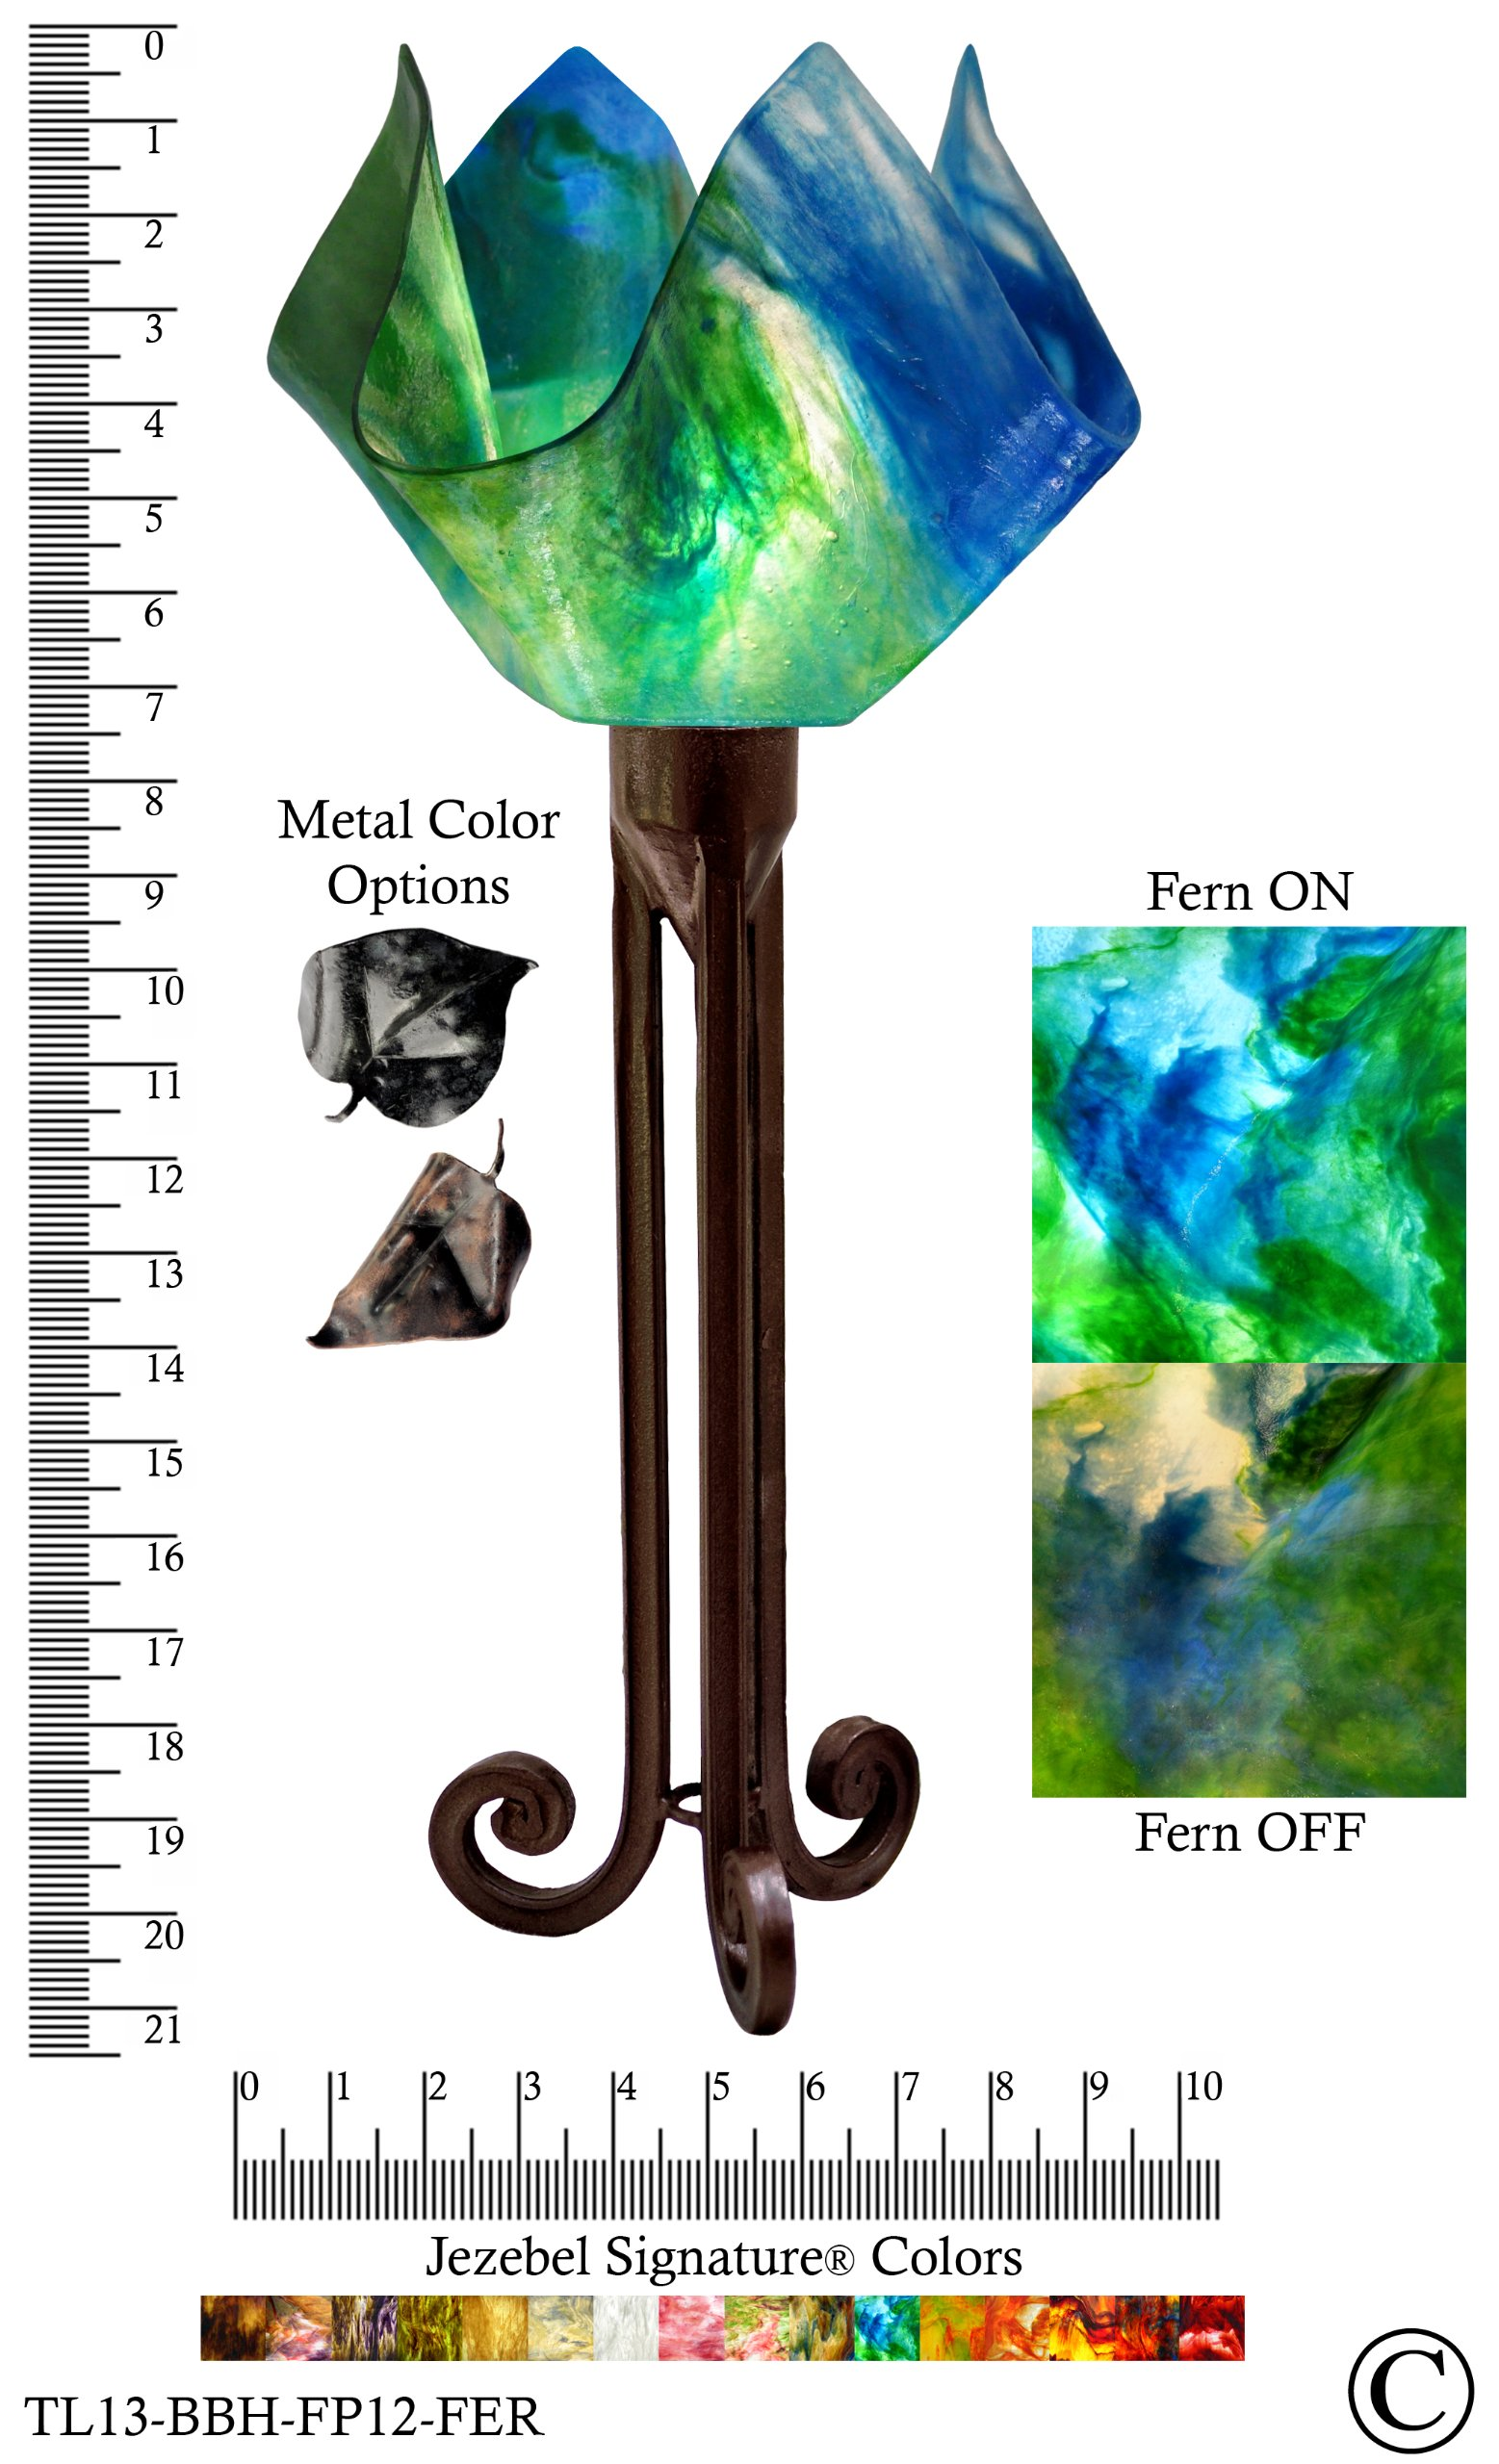 Jezebel Signature® Torch Light. Hardware: Brown with Brown Highlights. Glass: Fern, Flame Style